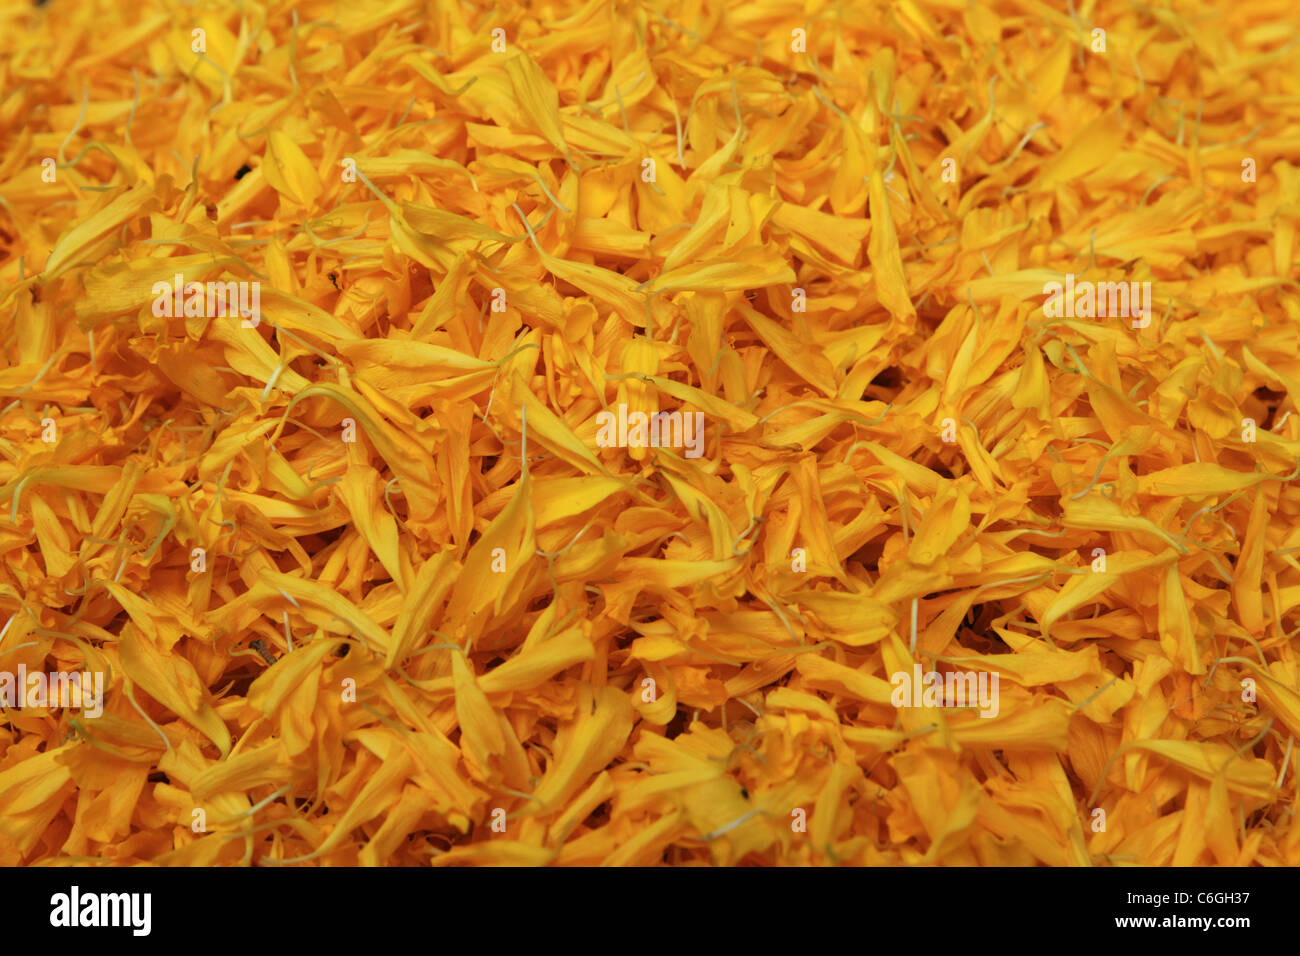 background of yellow flower petals with selective focus - Stock Image